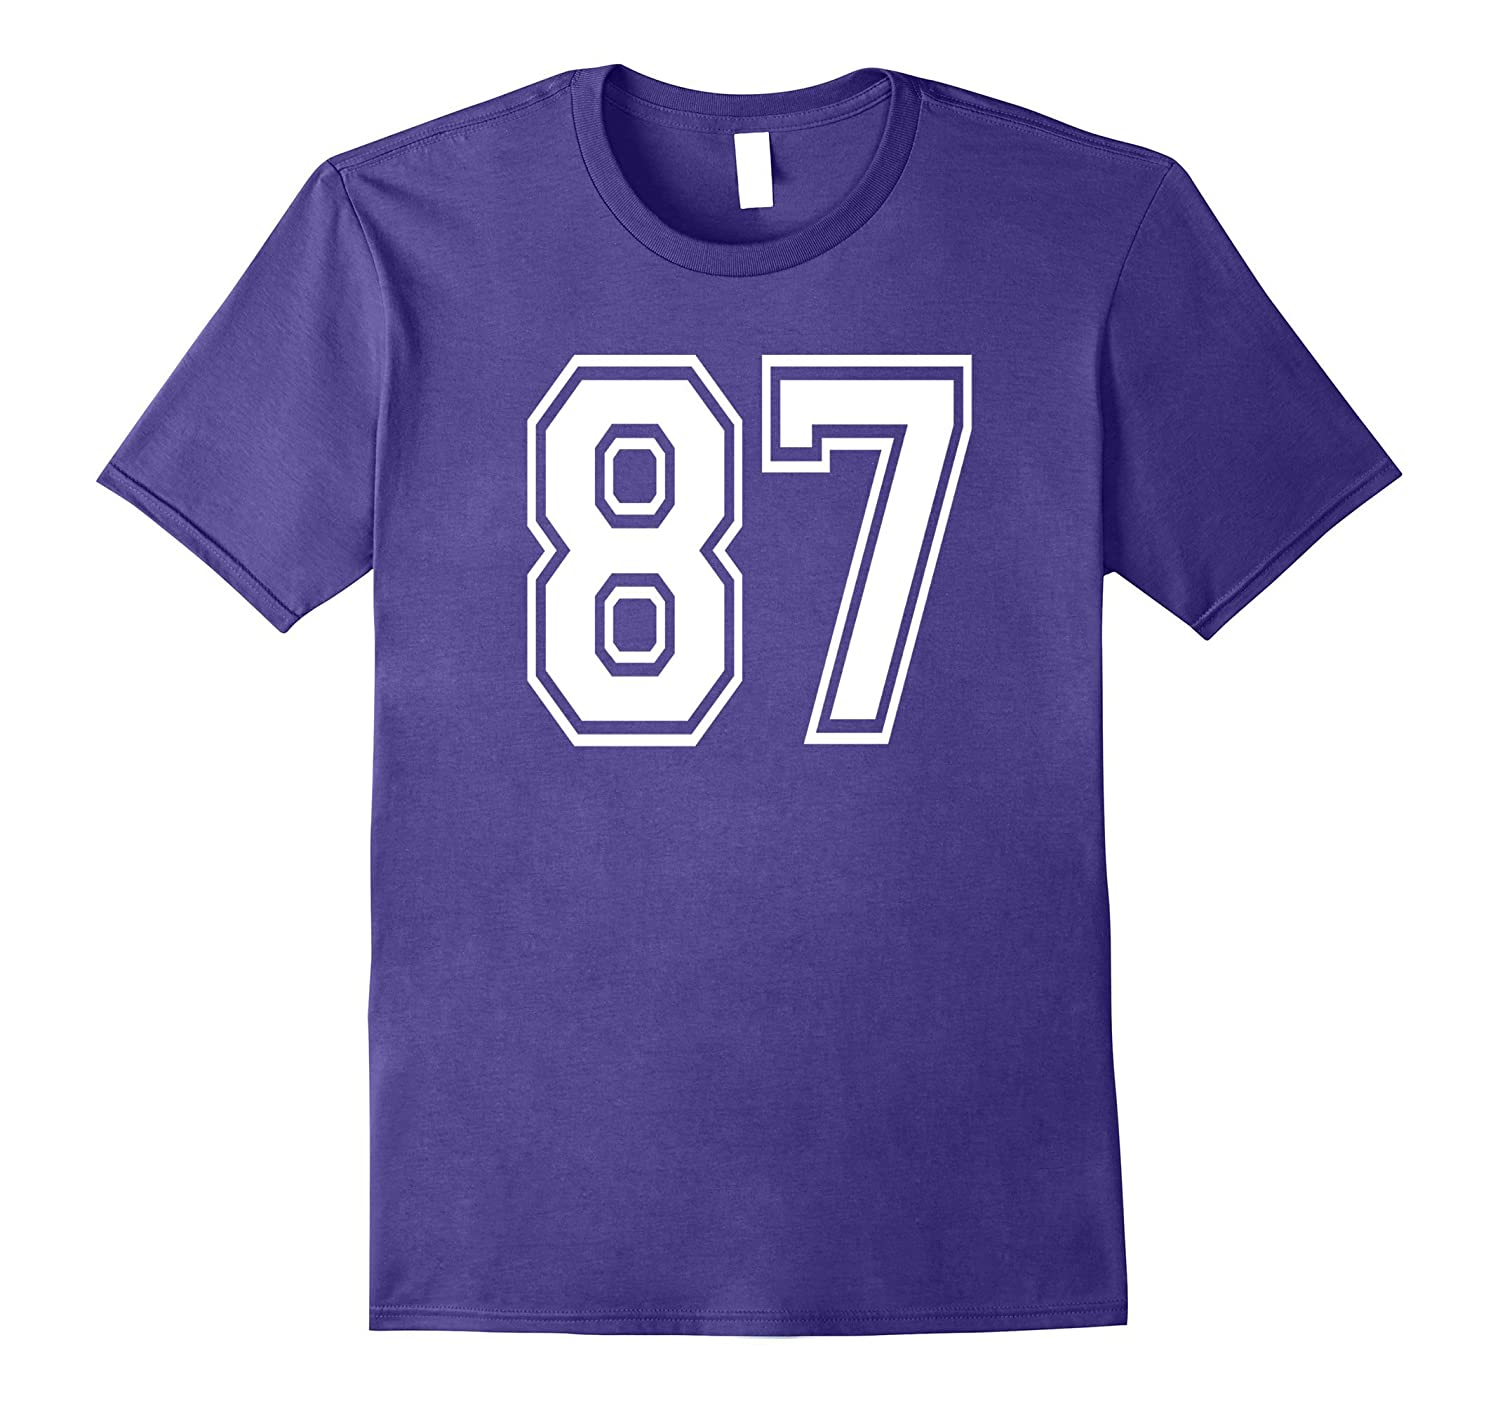 87 Sports Team School Numbers on Front T-Shirt Jersey-Vaci